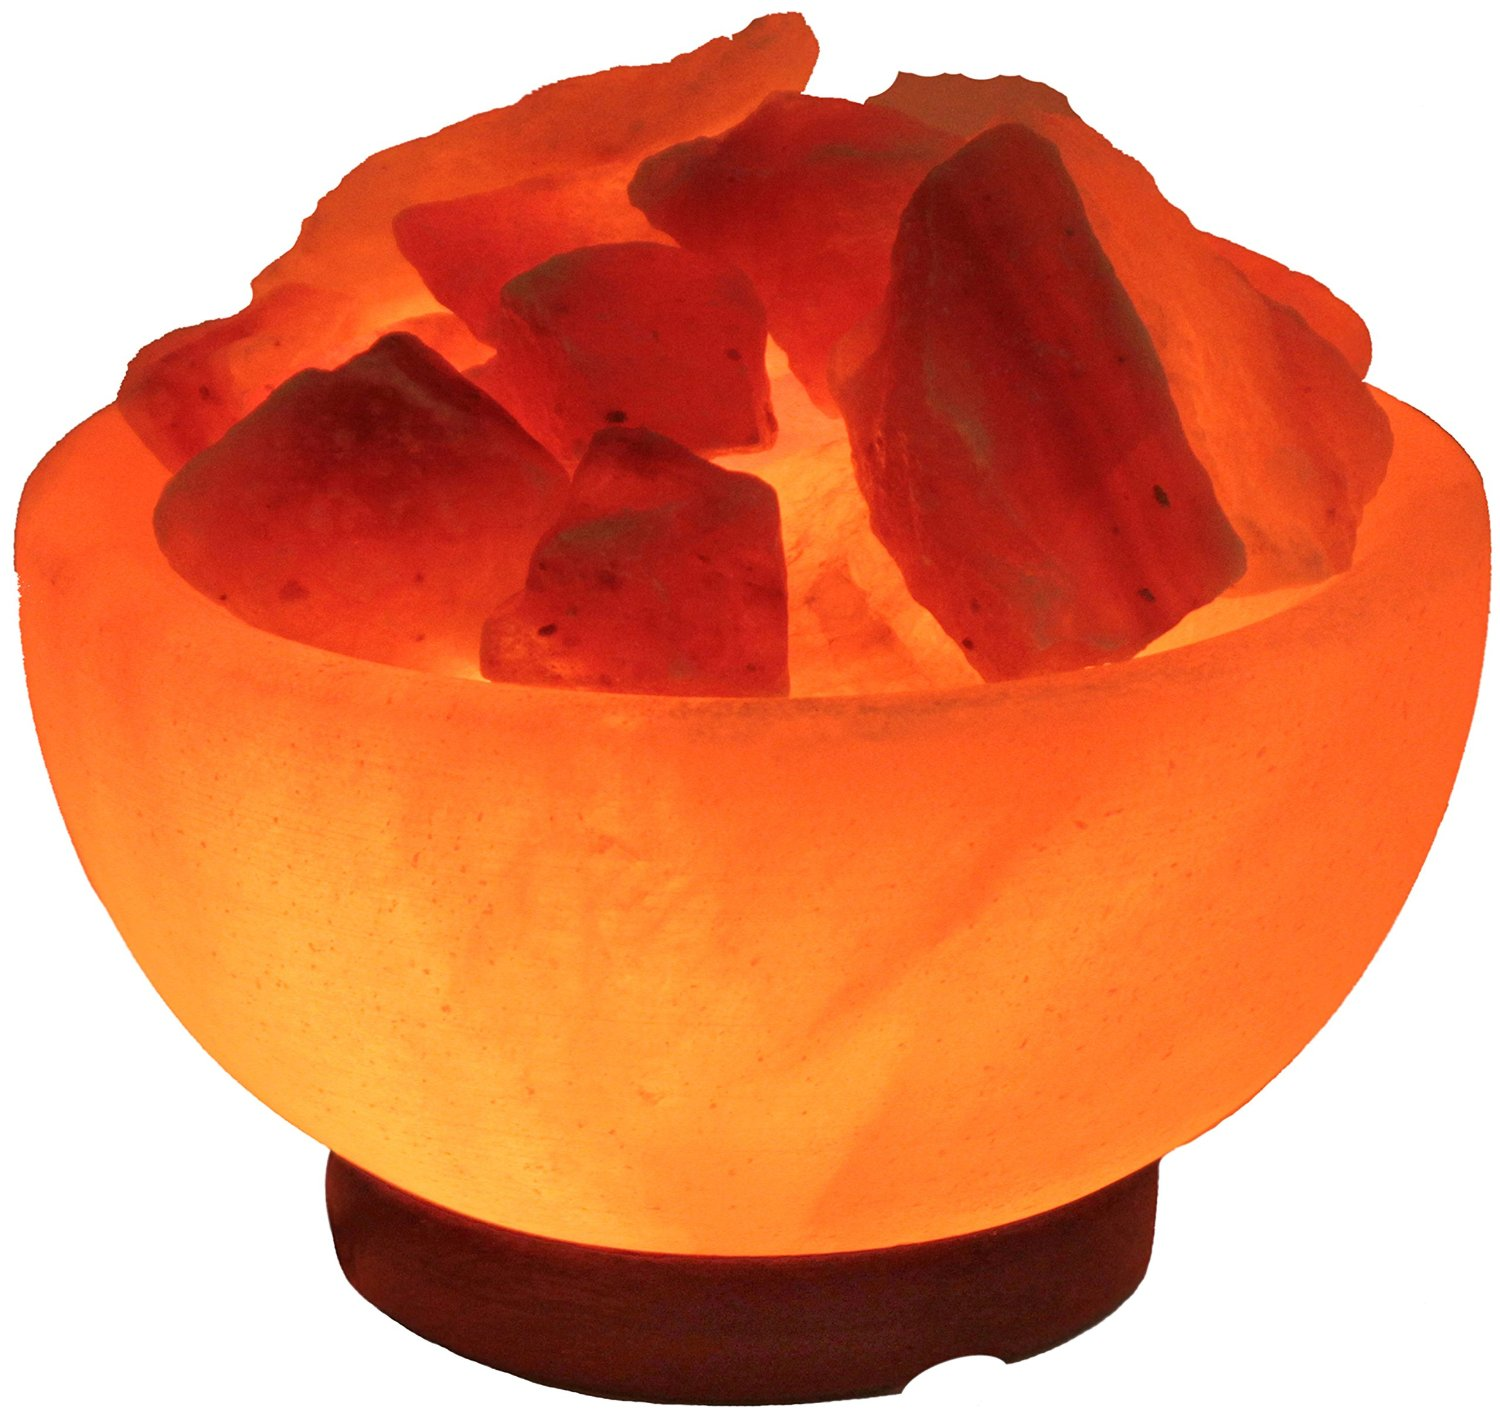 Indus Classic LFB-04 3.5-Inch Himalayan Fire Bowl Salt Lamp Natural Crystal Rock, 7-9-Pound